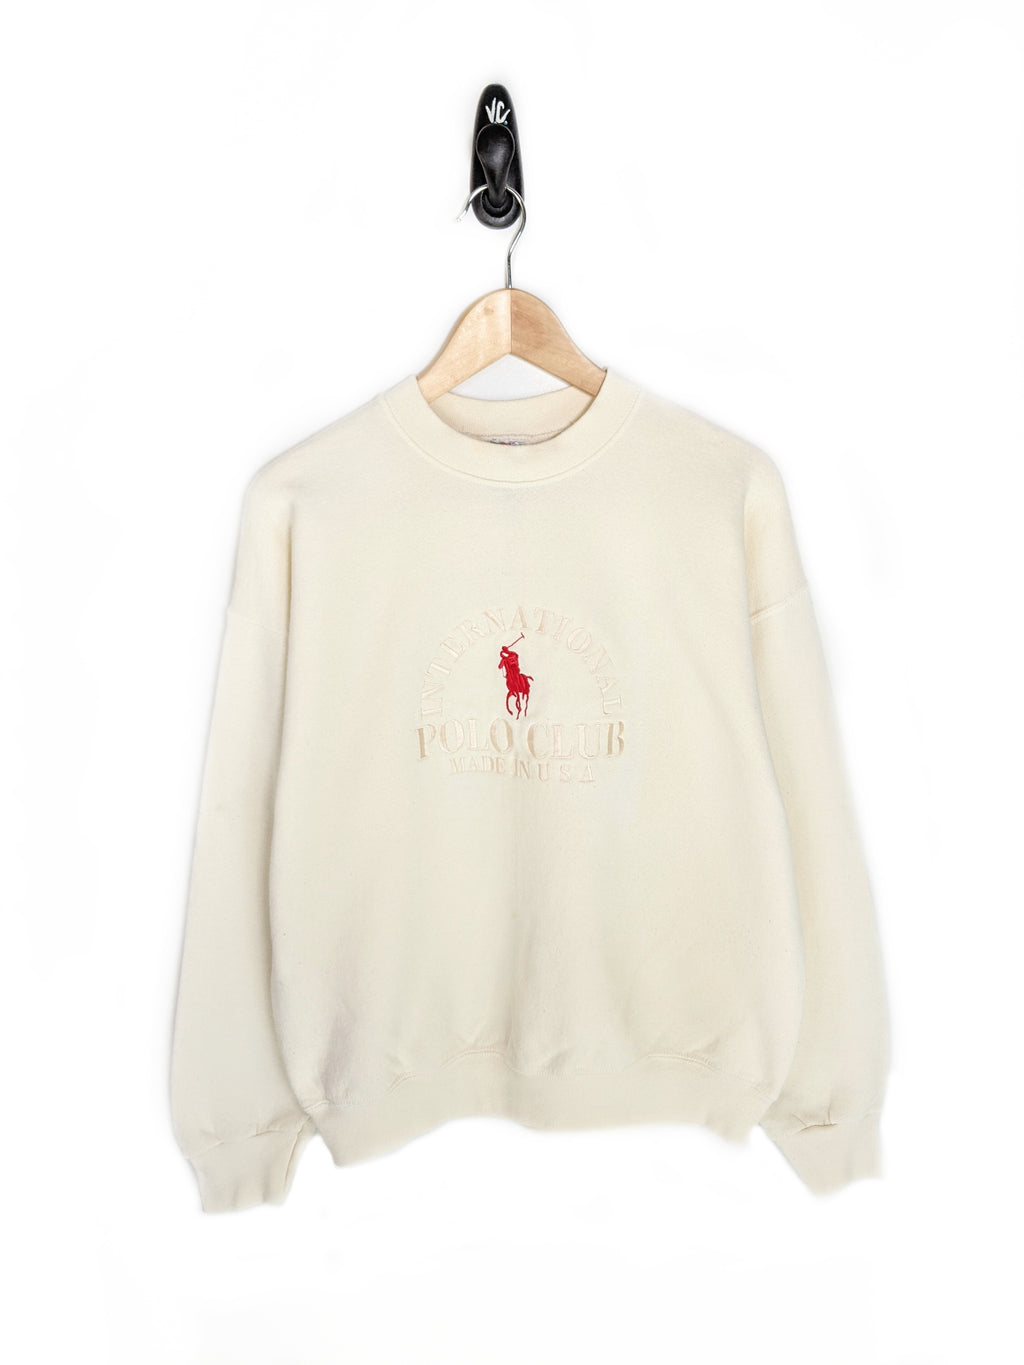 Int. POLO Club Sweatshirt (L)